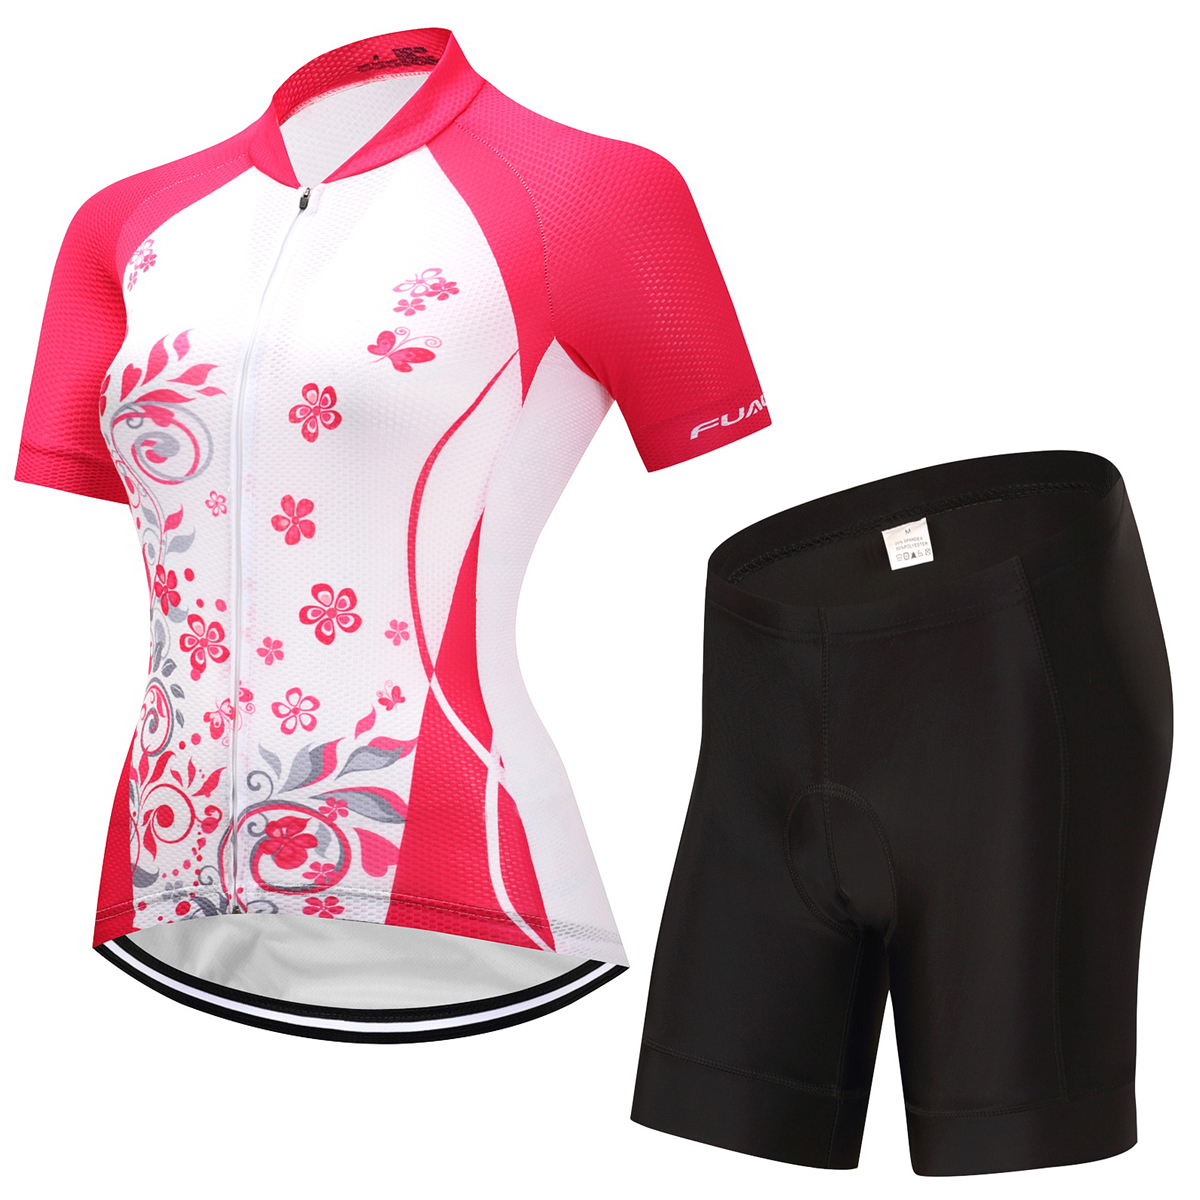 2017 Pro Cycling Jersey Set Girls Summer MTB Road Bike Bicycle Jersey Breathable Sponge Padded Cycling Clothing